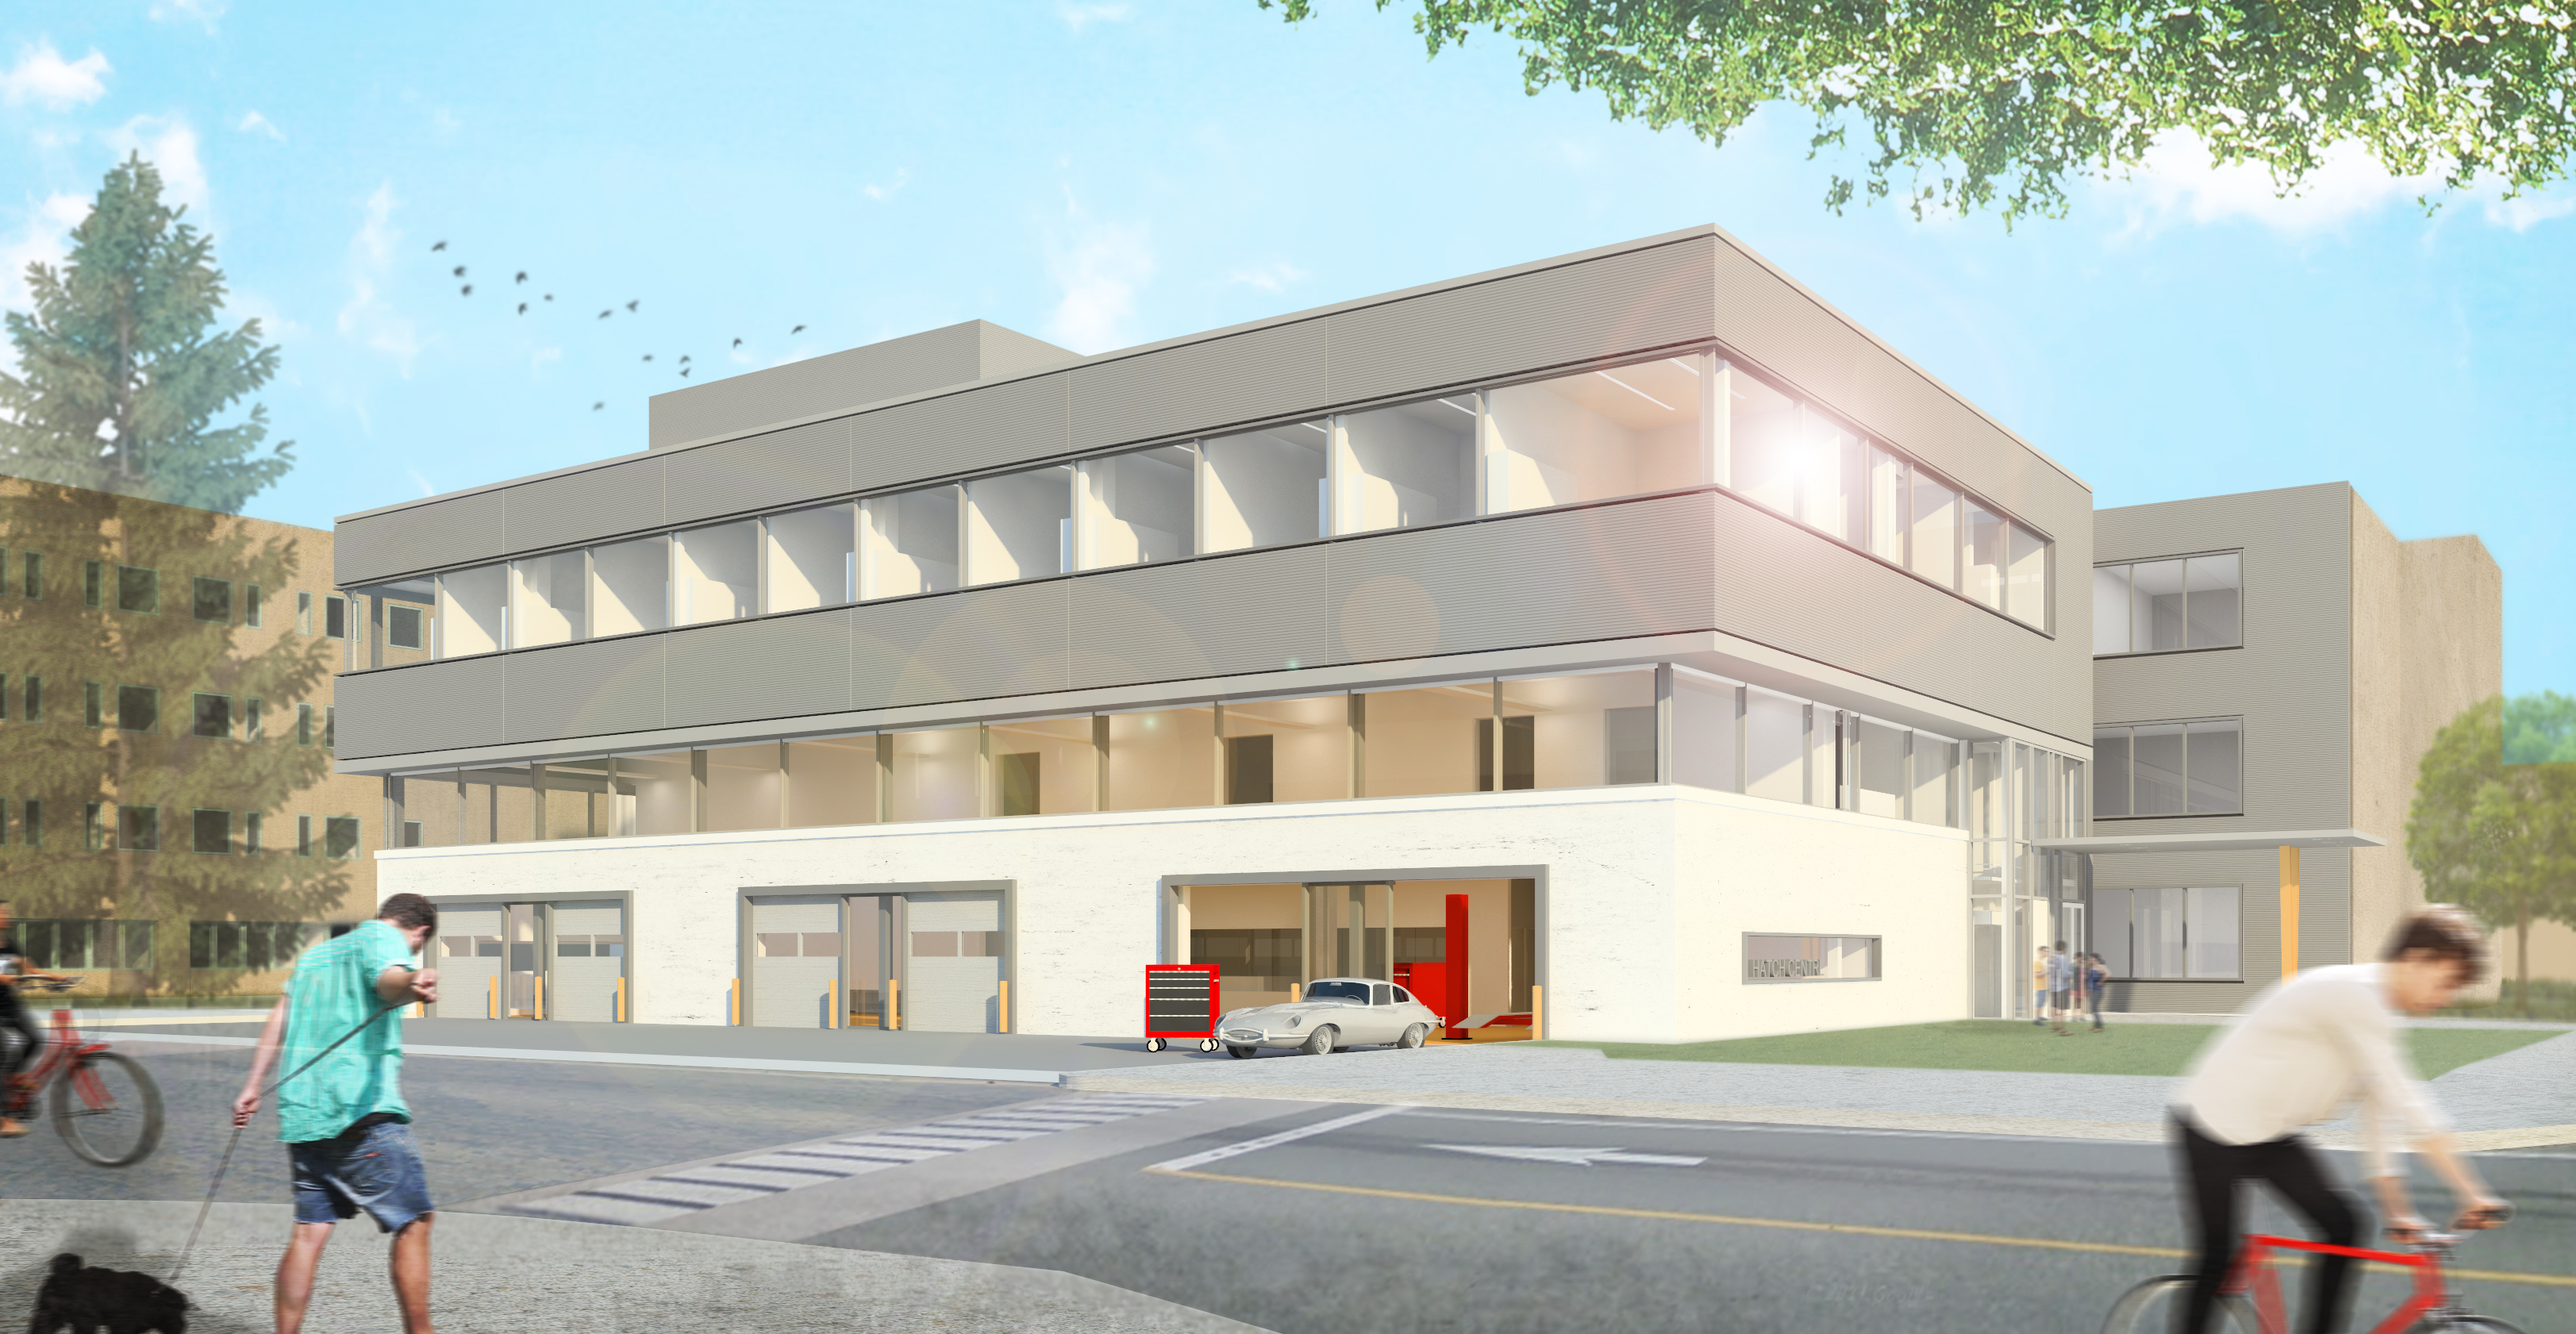 Rendering of the Gerald Hatch Centre for Engineering Experiential Learning, by Diamond Schmitt Architects